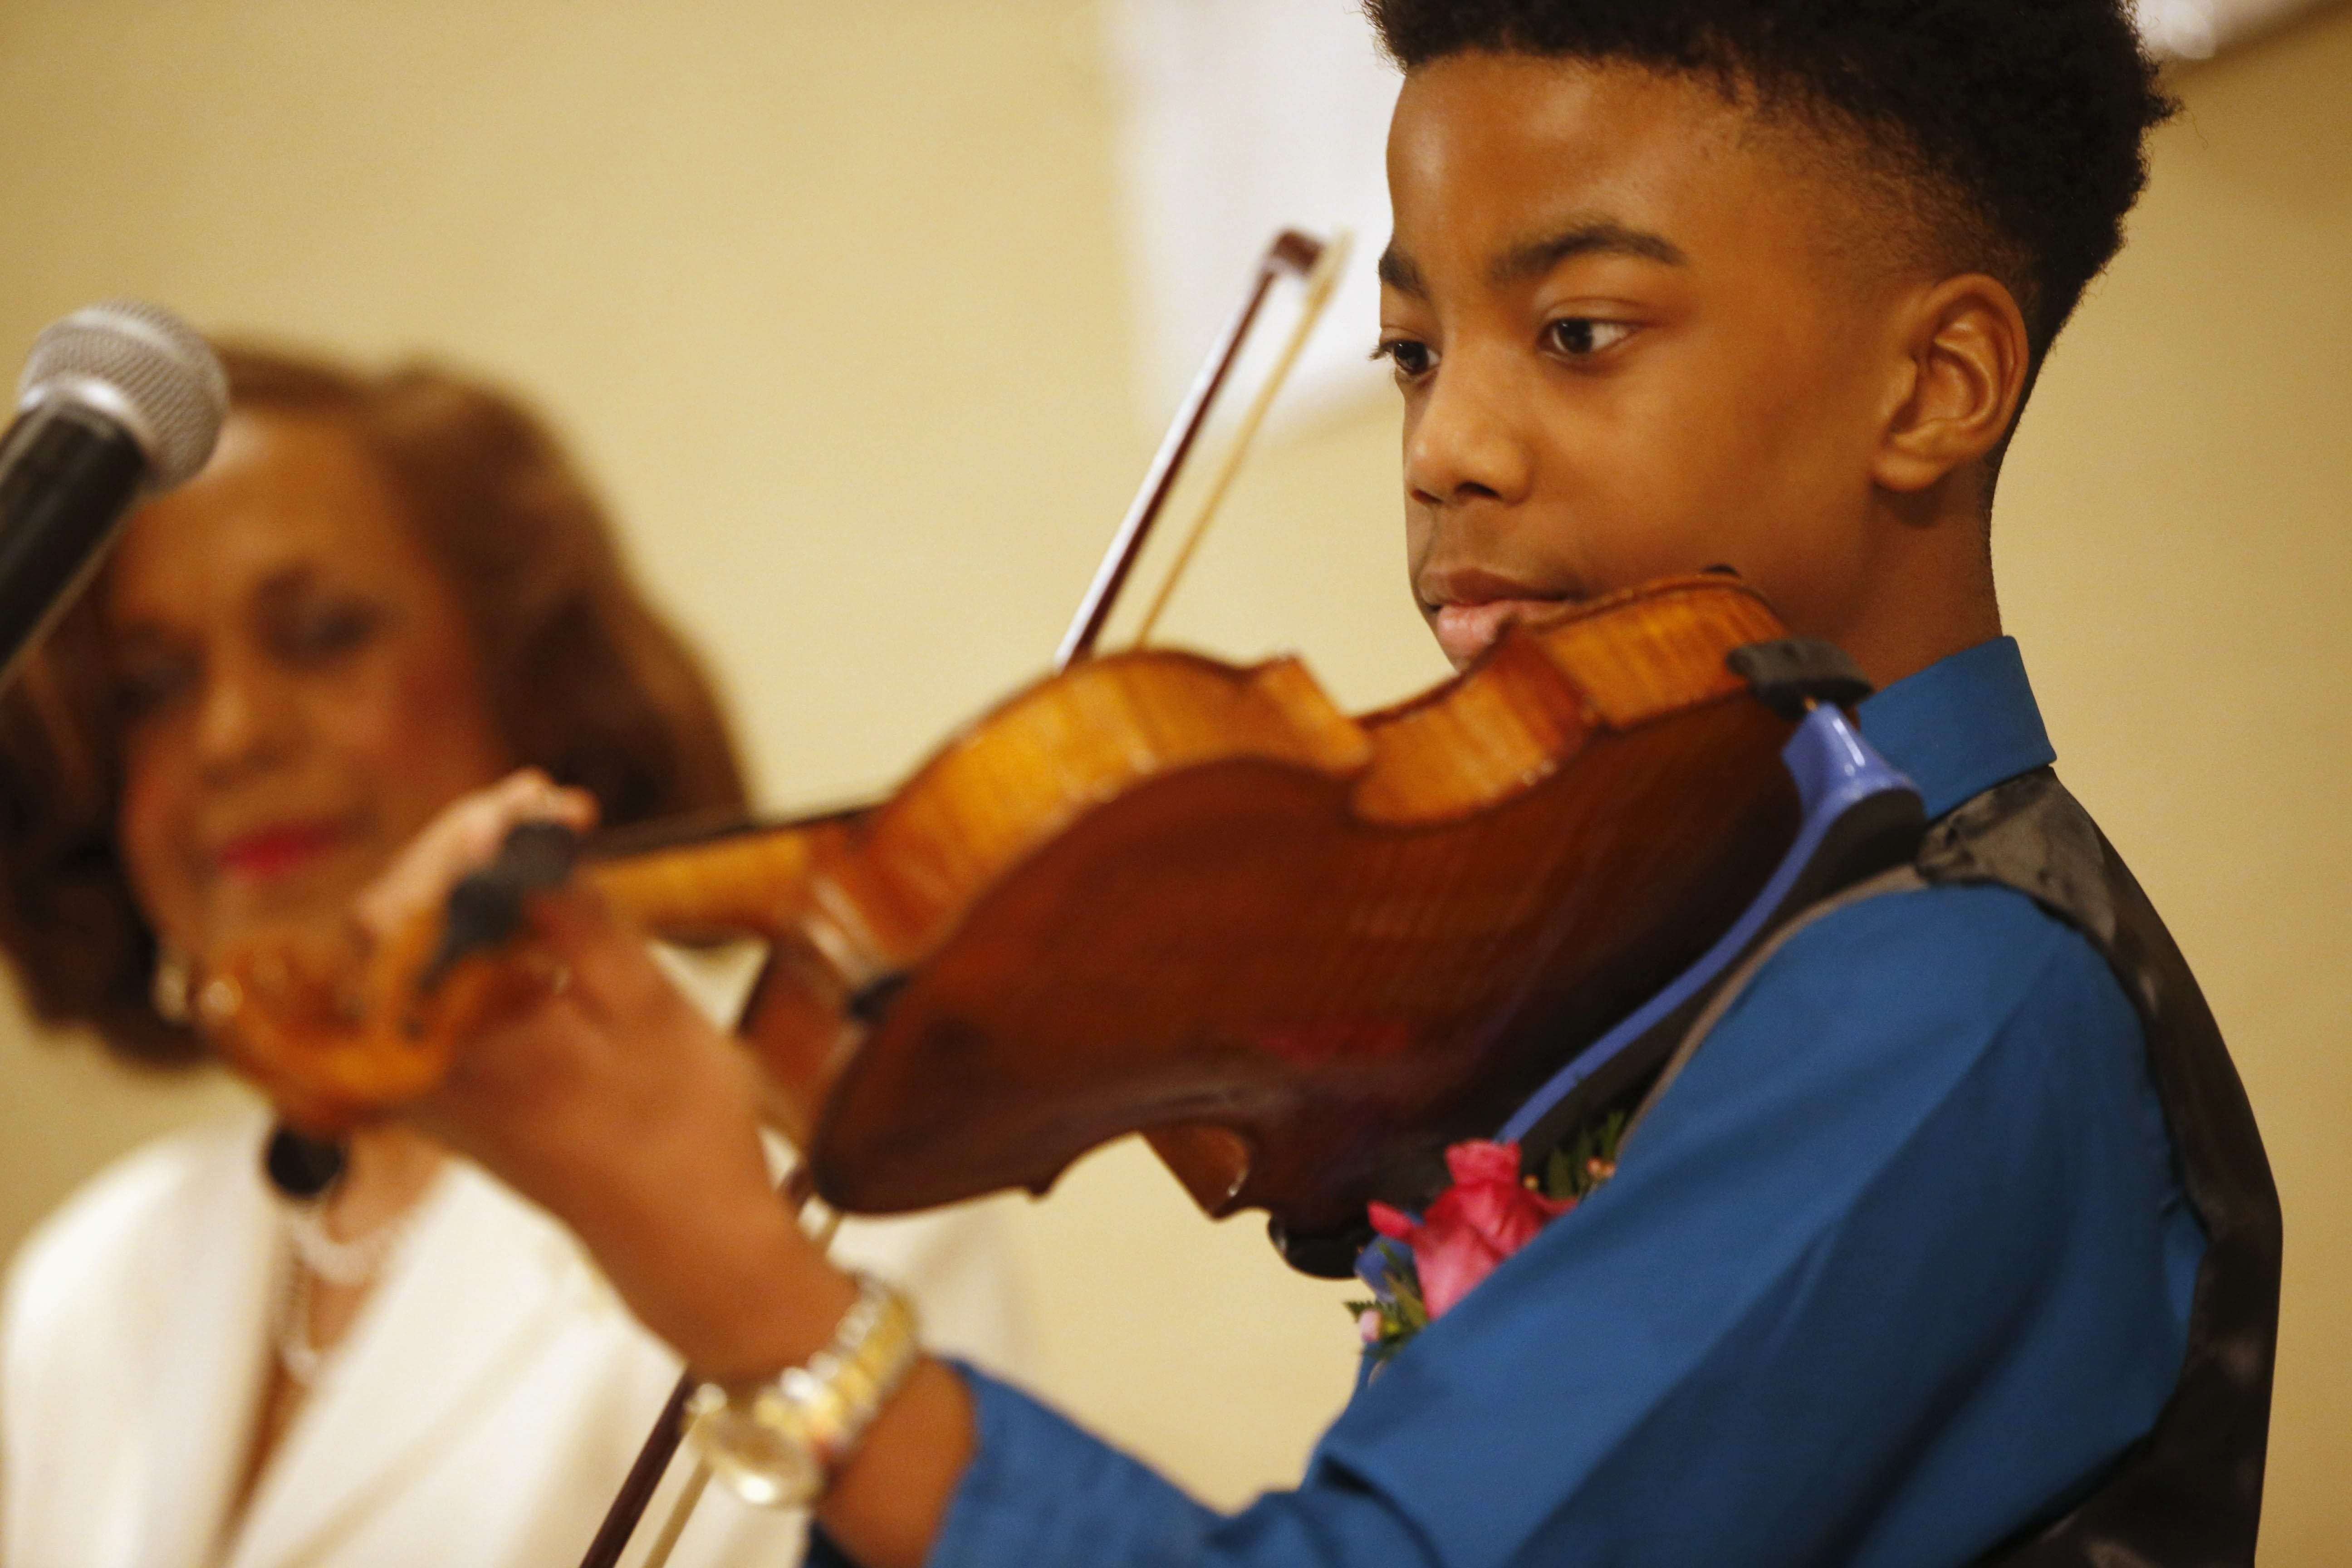 Rahim Dunston, one of four community service honorees, plays the violin at the Alpha Kappa Alpha Sorority, Xi Epsilon Omega Chapter Founder's Day Luncheon at the Buffalo Niagara Marriott on Sunday.